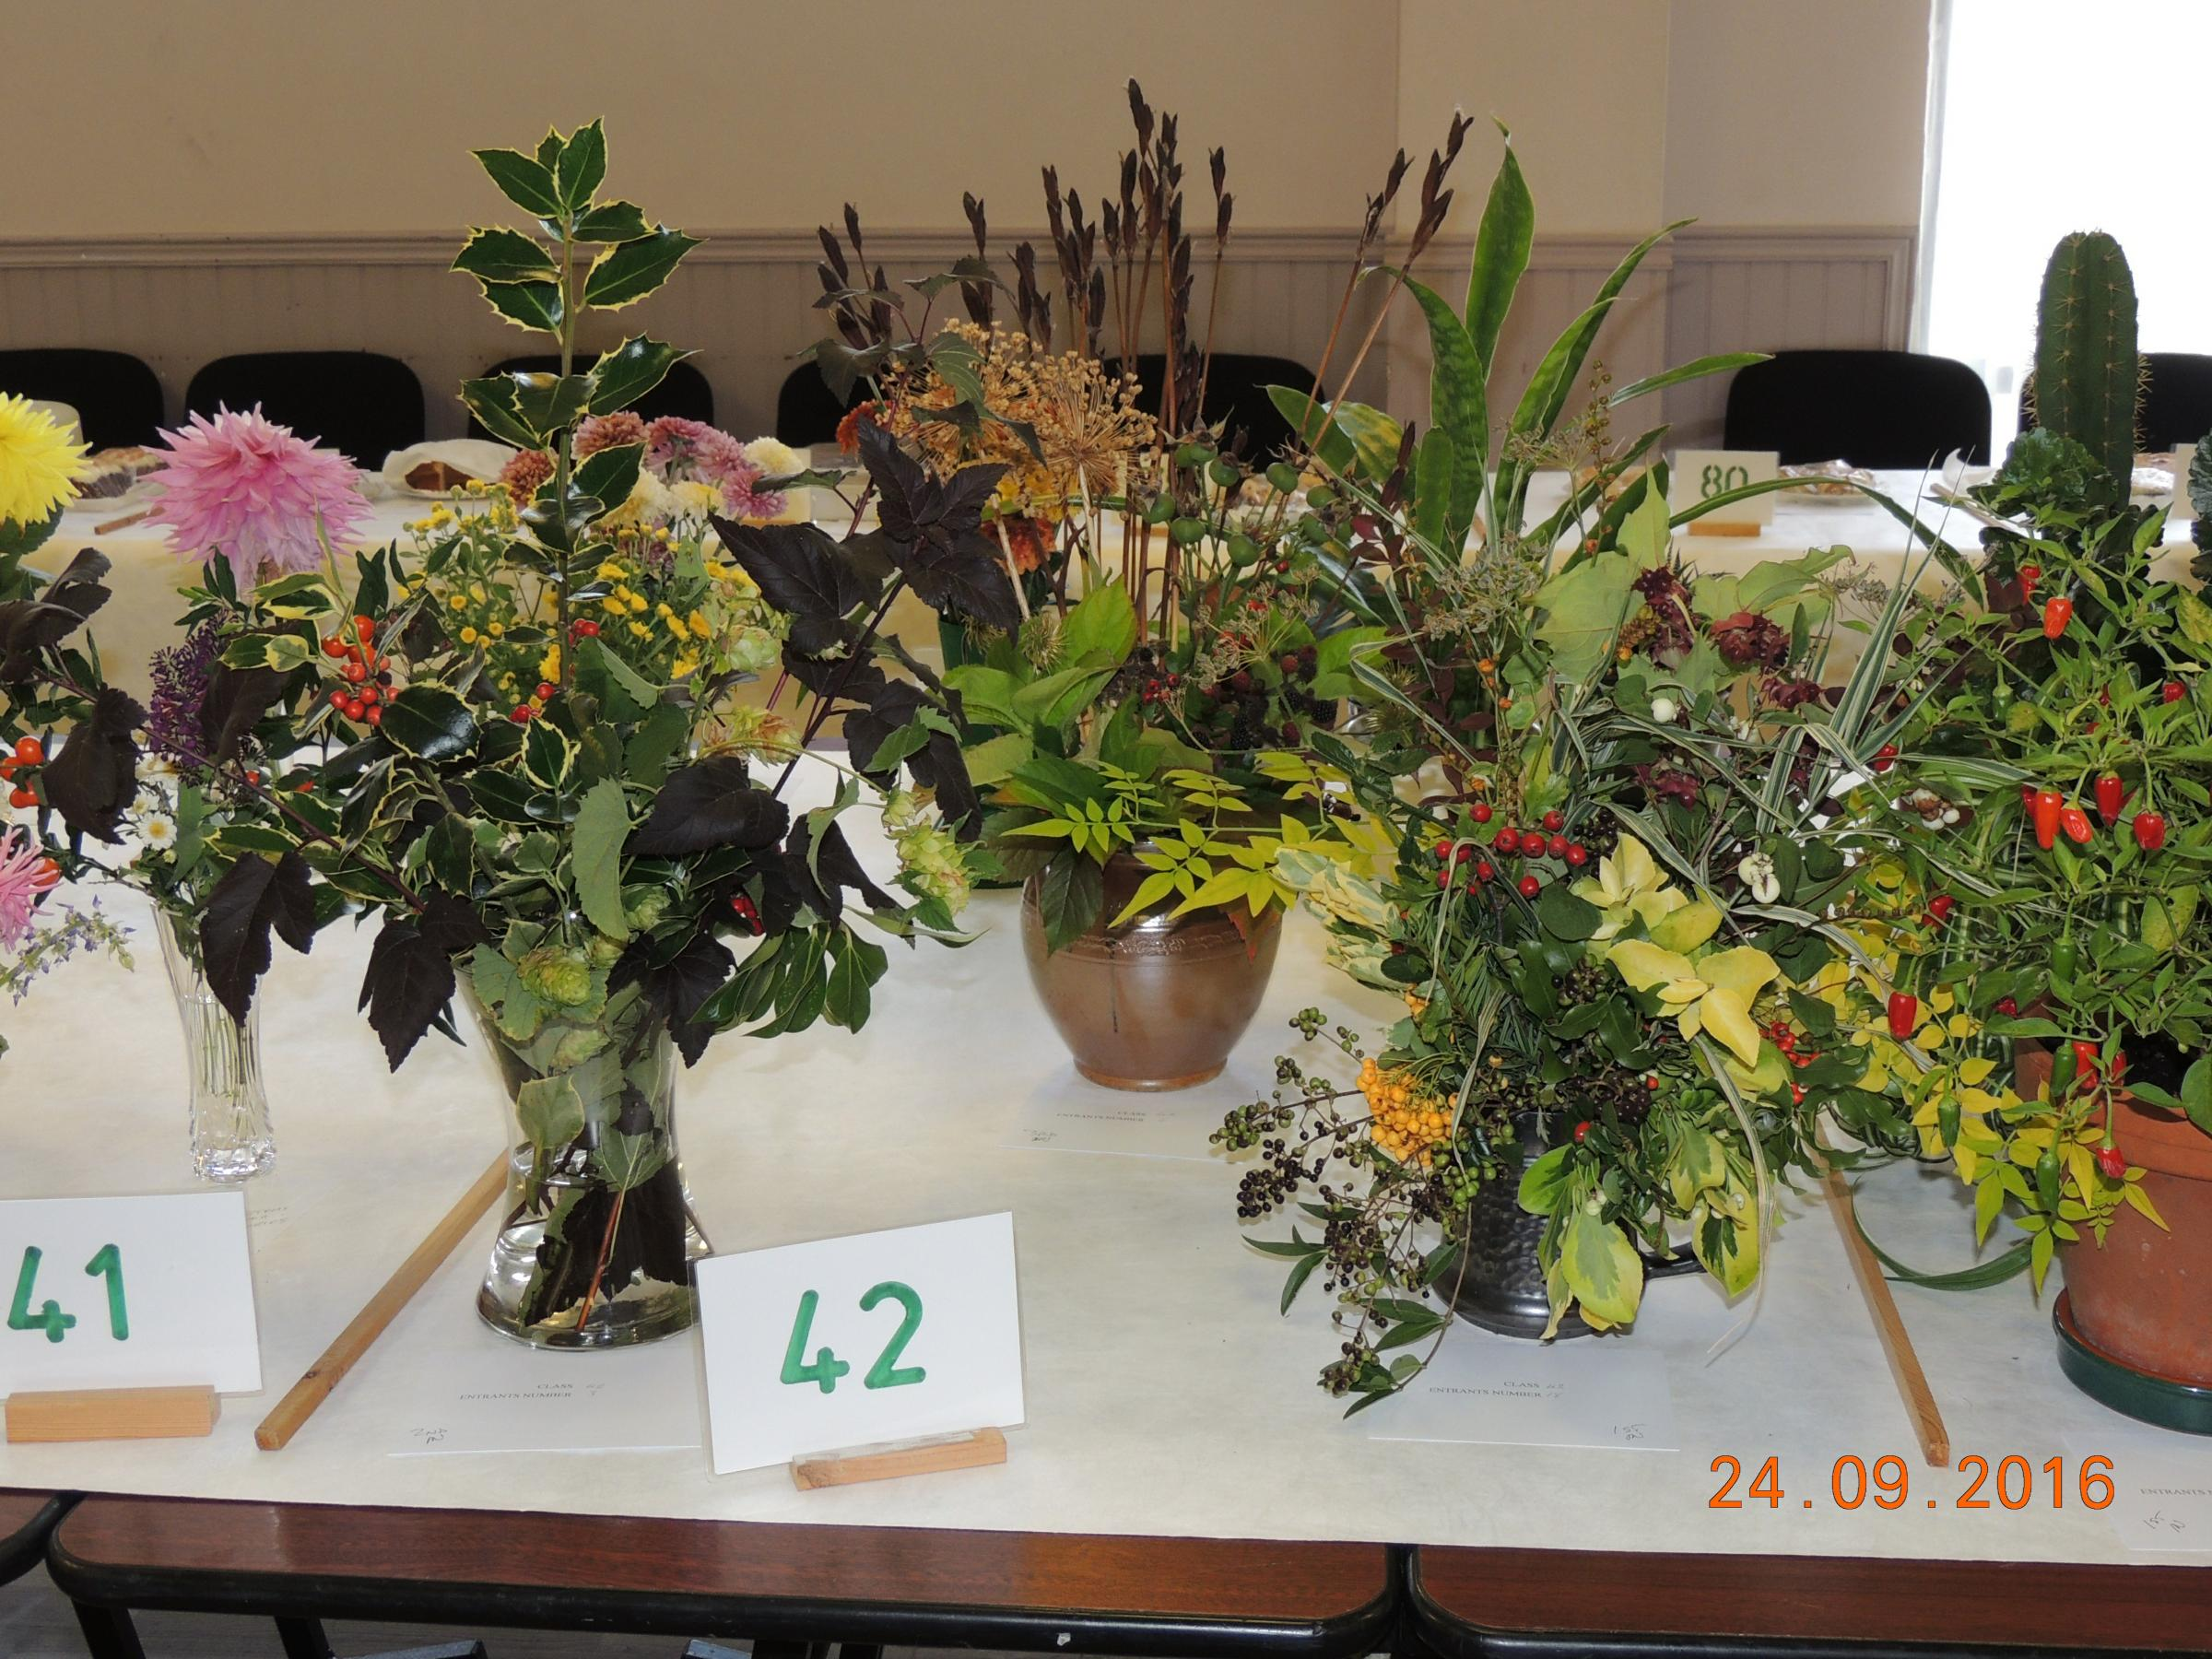 Laindon Horticultural Society